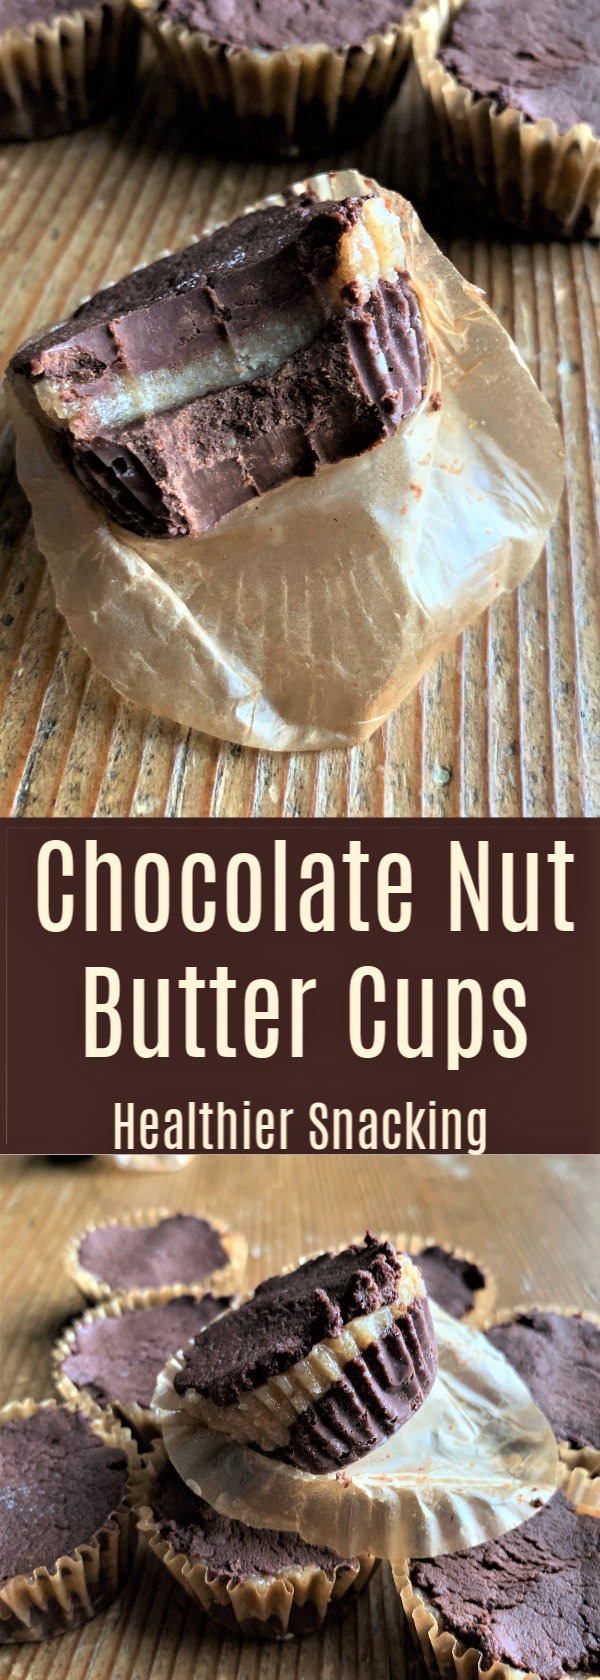 Chocolate Nut Butter Cups! These are creamy and delicious with ingredients you can feel good about. Dairy Free, Gluten Free, Paleo, Vegan